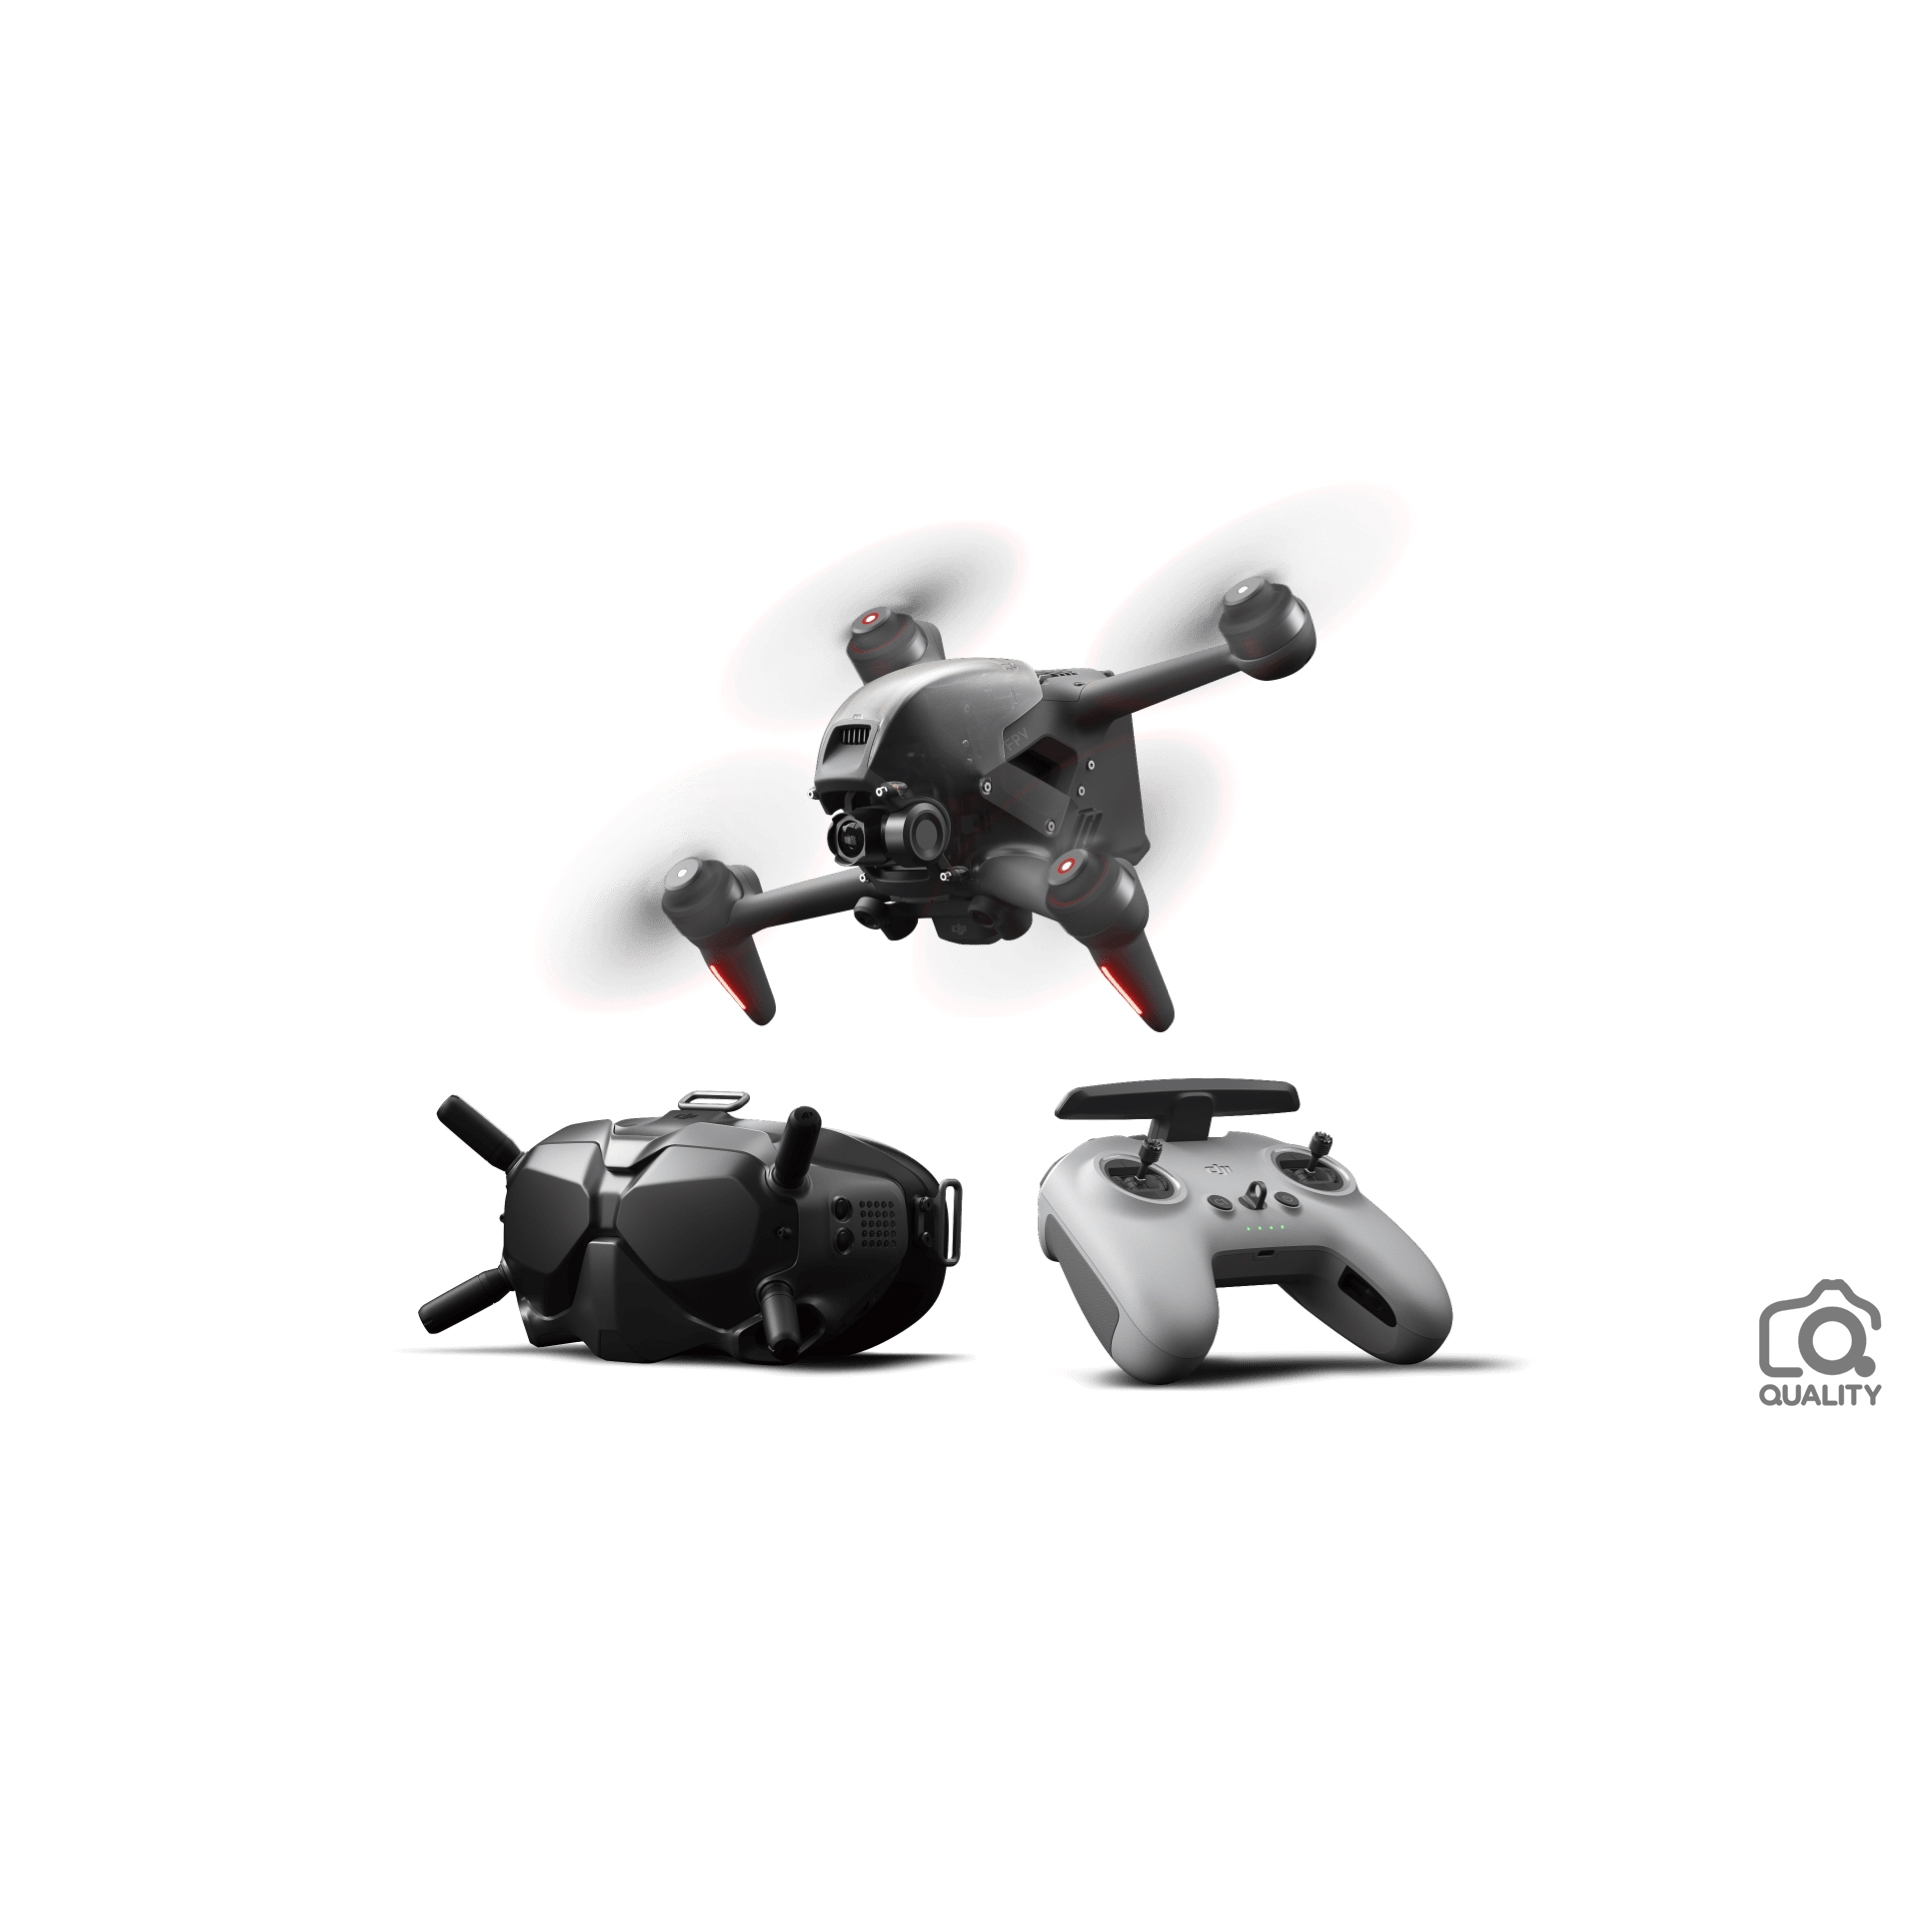 Drone Dji Fpv Combo Kit Óculos/controle + Combo Fly More